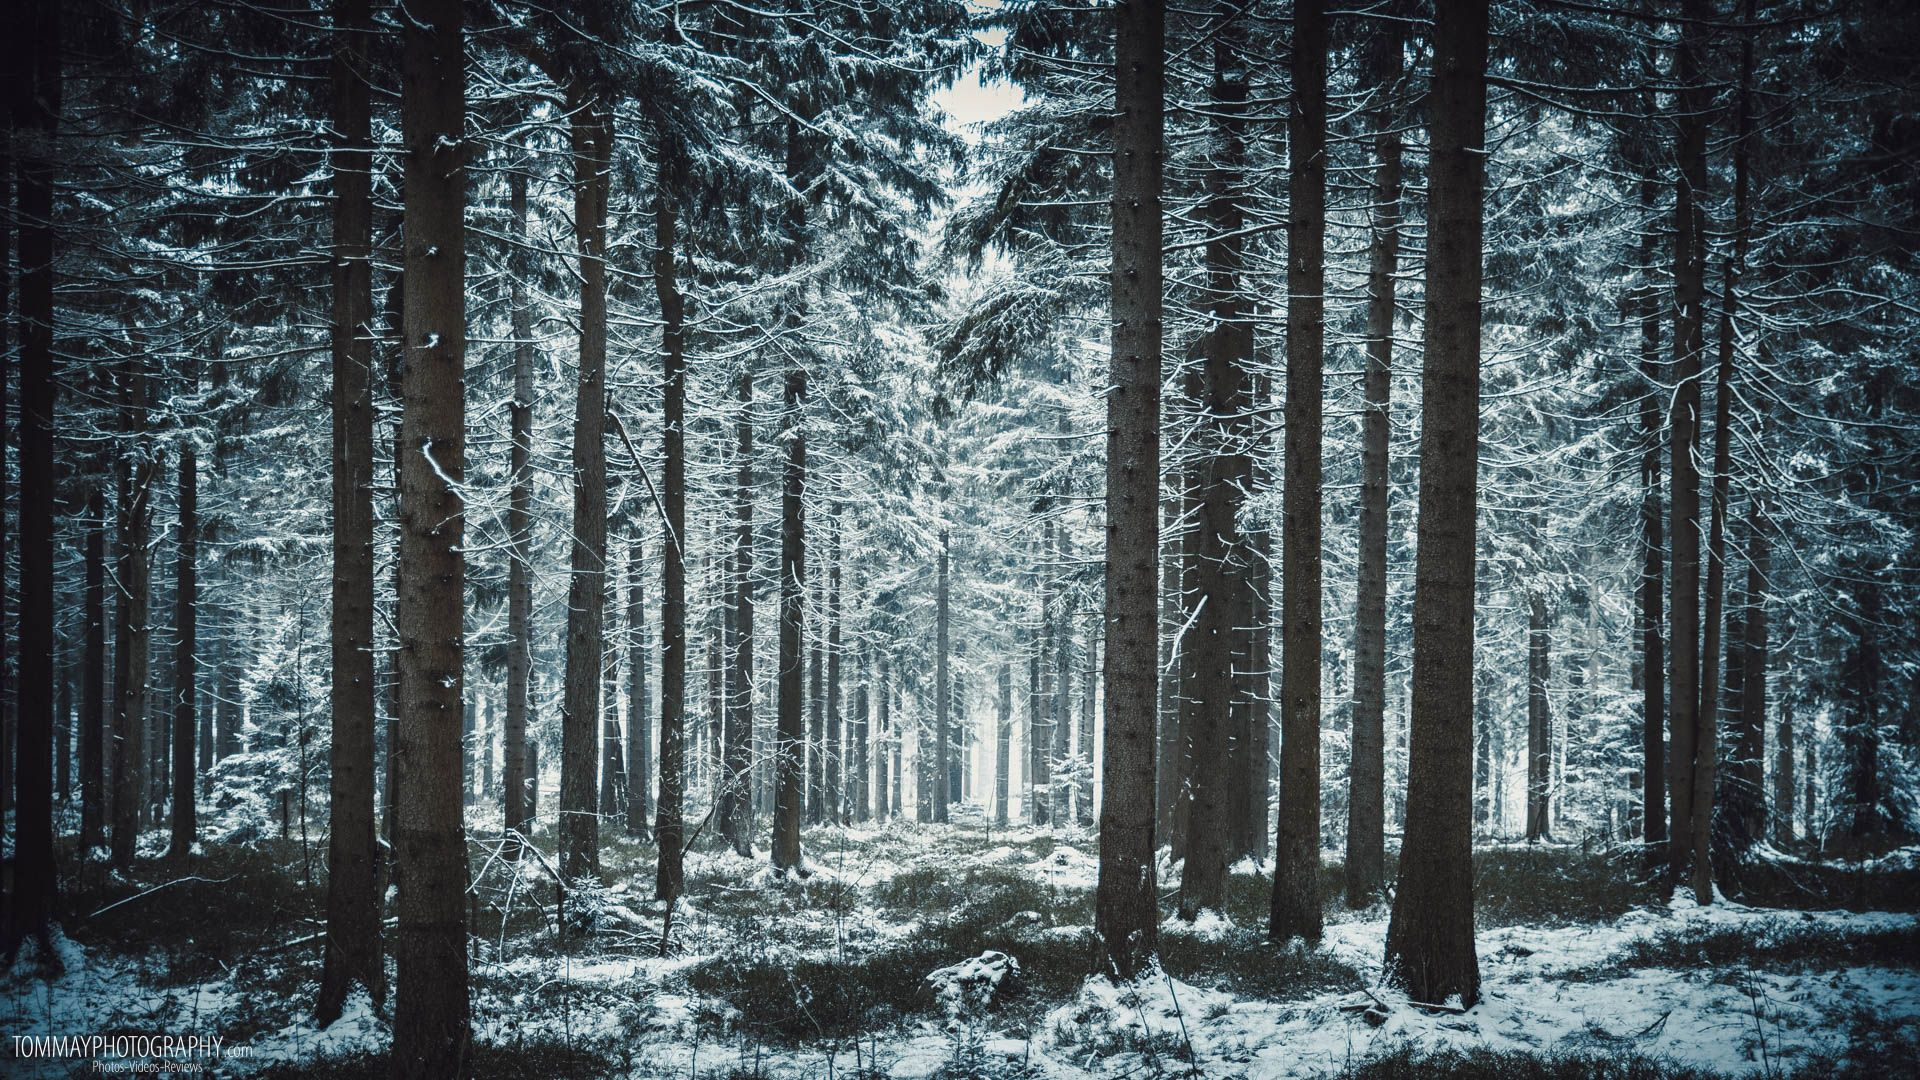 Winter forest background images pinterest